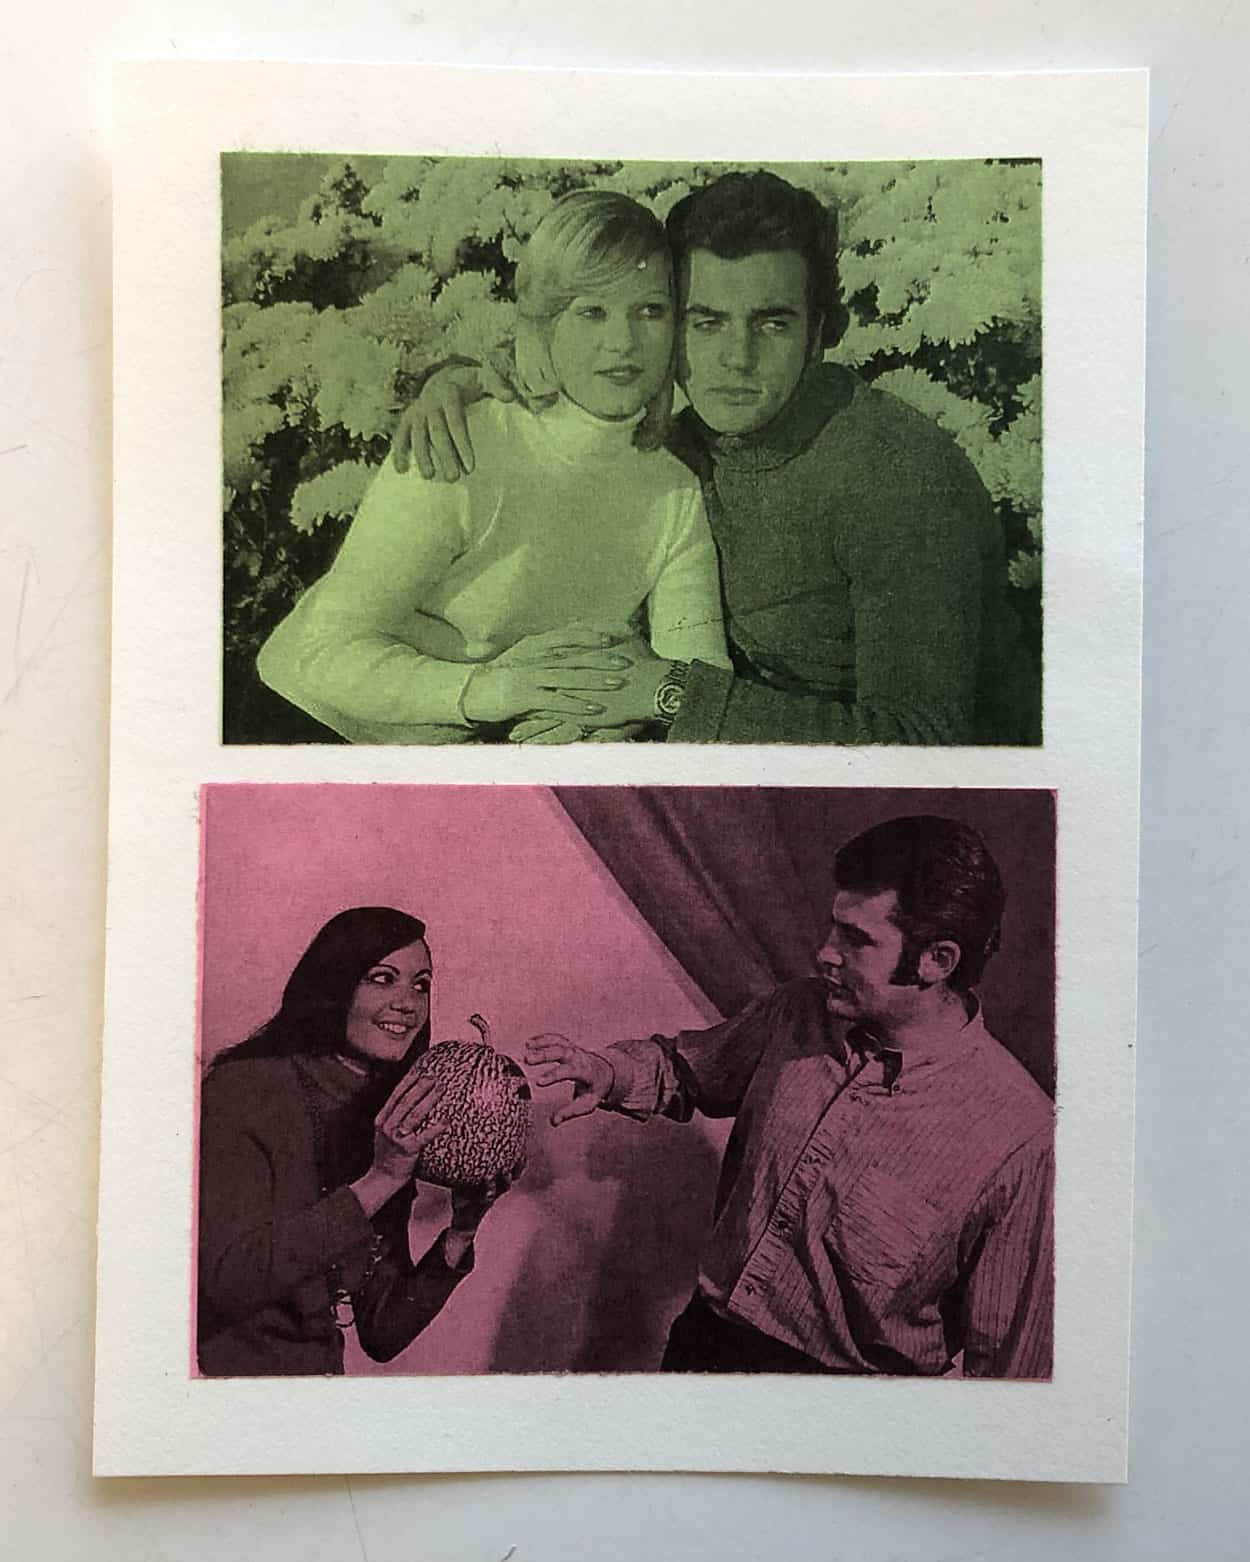 two photos are on cardstock. The top green and black, a photo od a man and a woman hugging in front of flowers. The bottom, in pink and black, is of a woman holding a bowling ball for a man to stick his hand into.